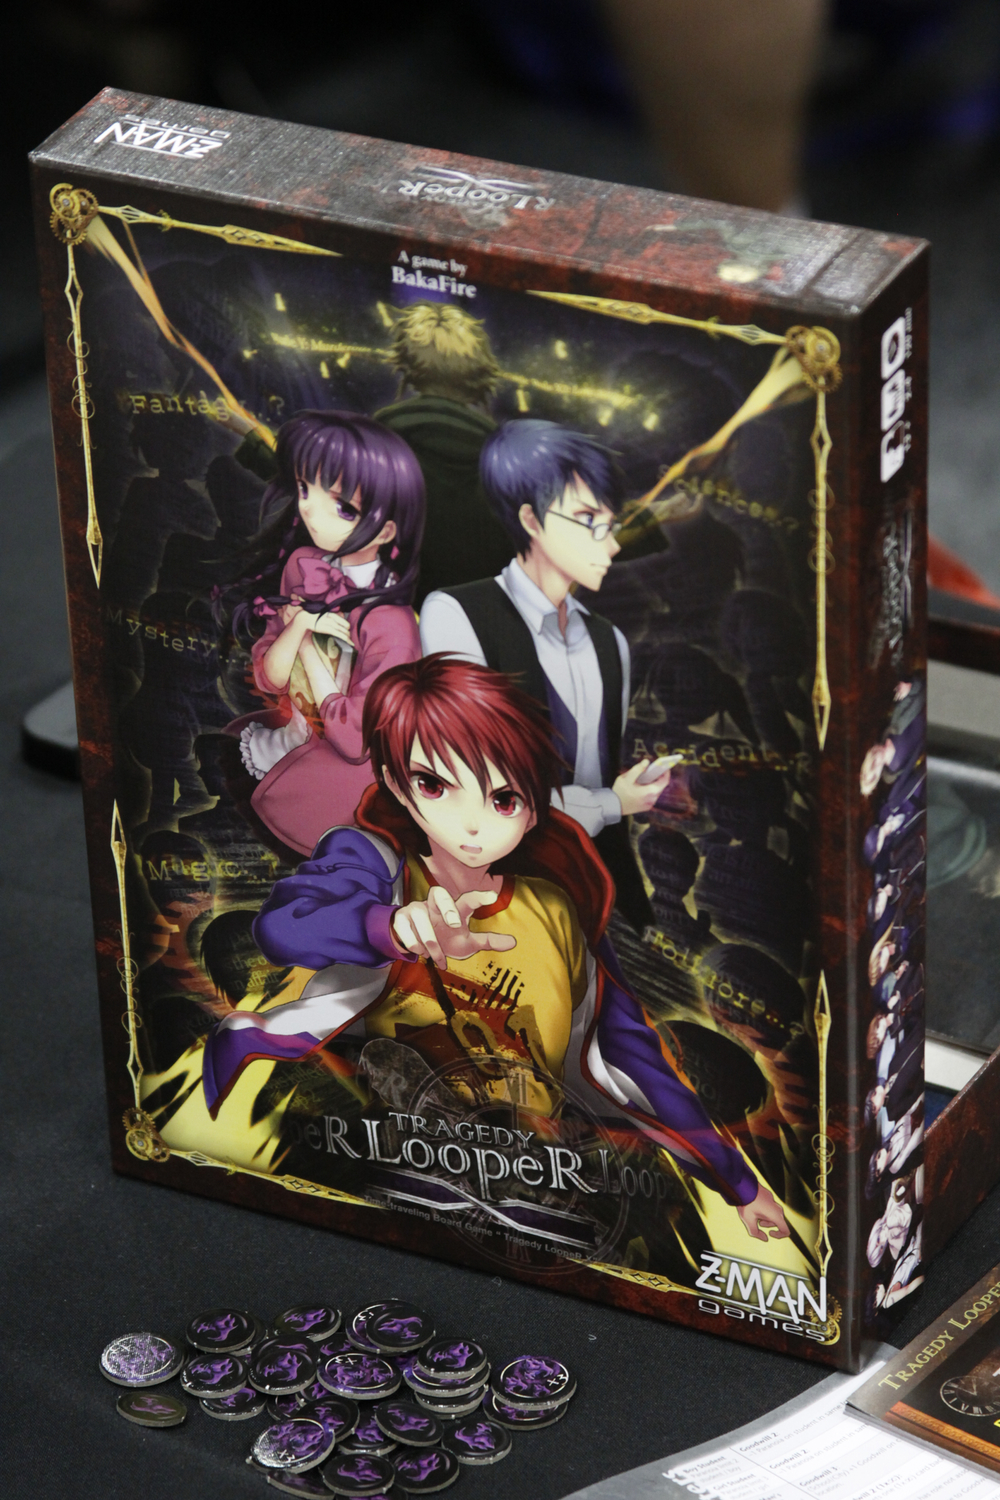 To win this board game you must become an anime character